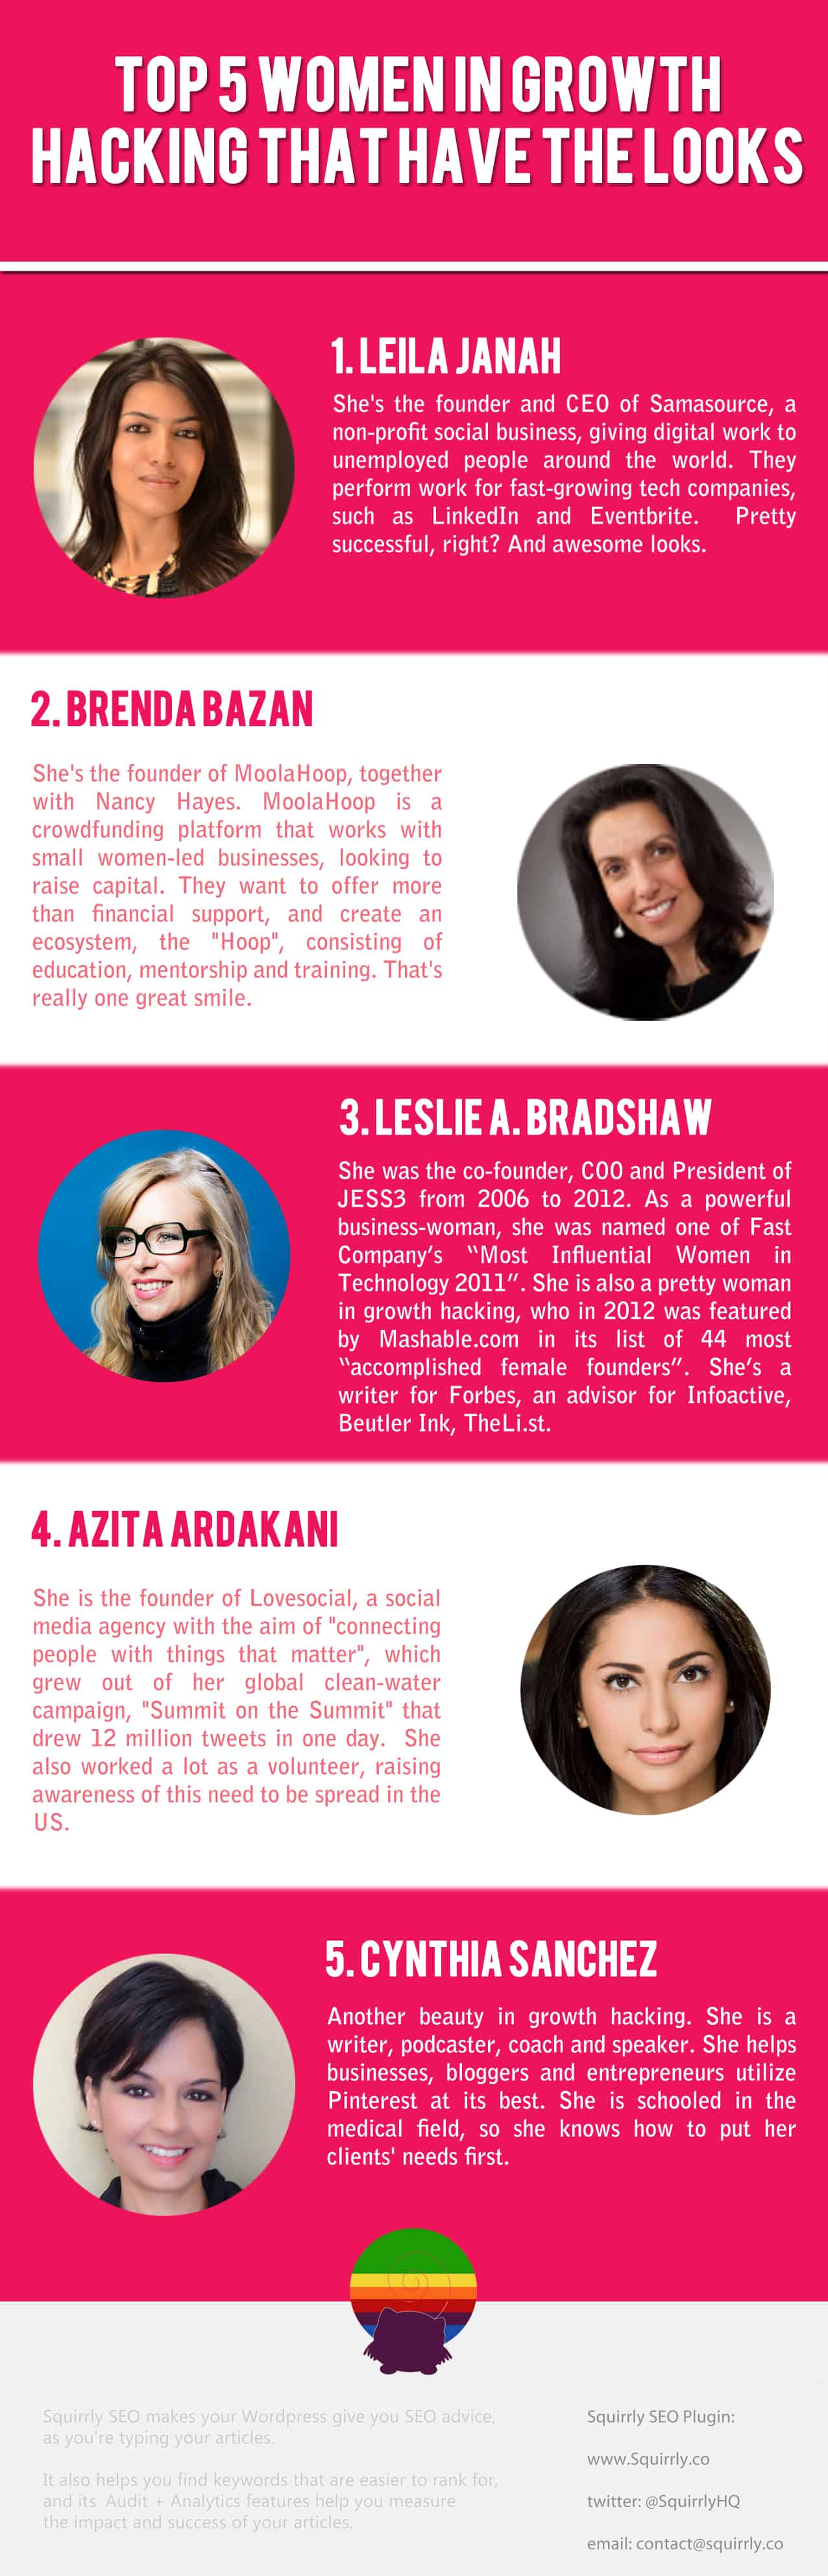 Top 5 women in growth hacking that have the looks